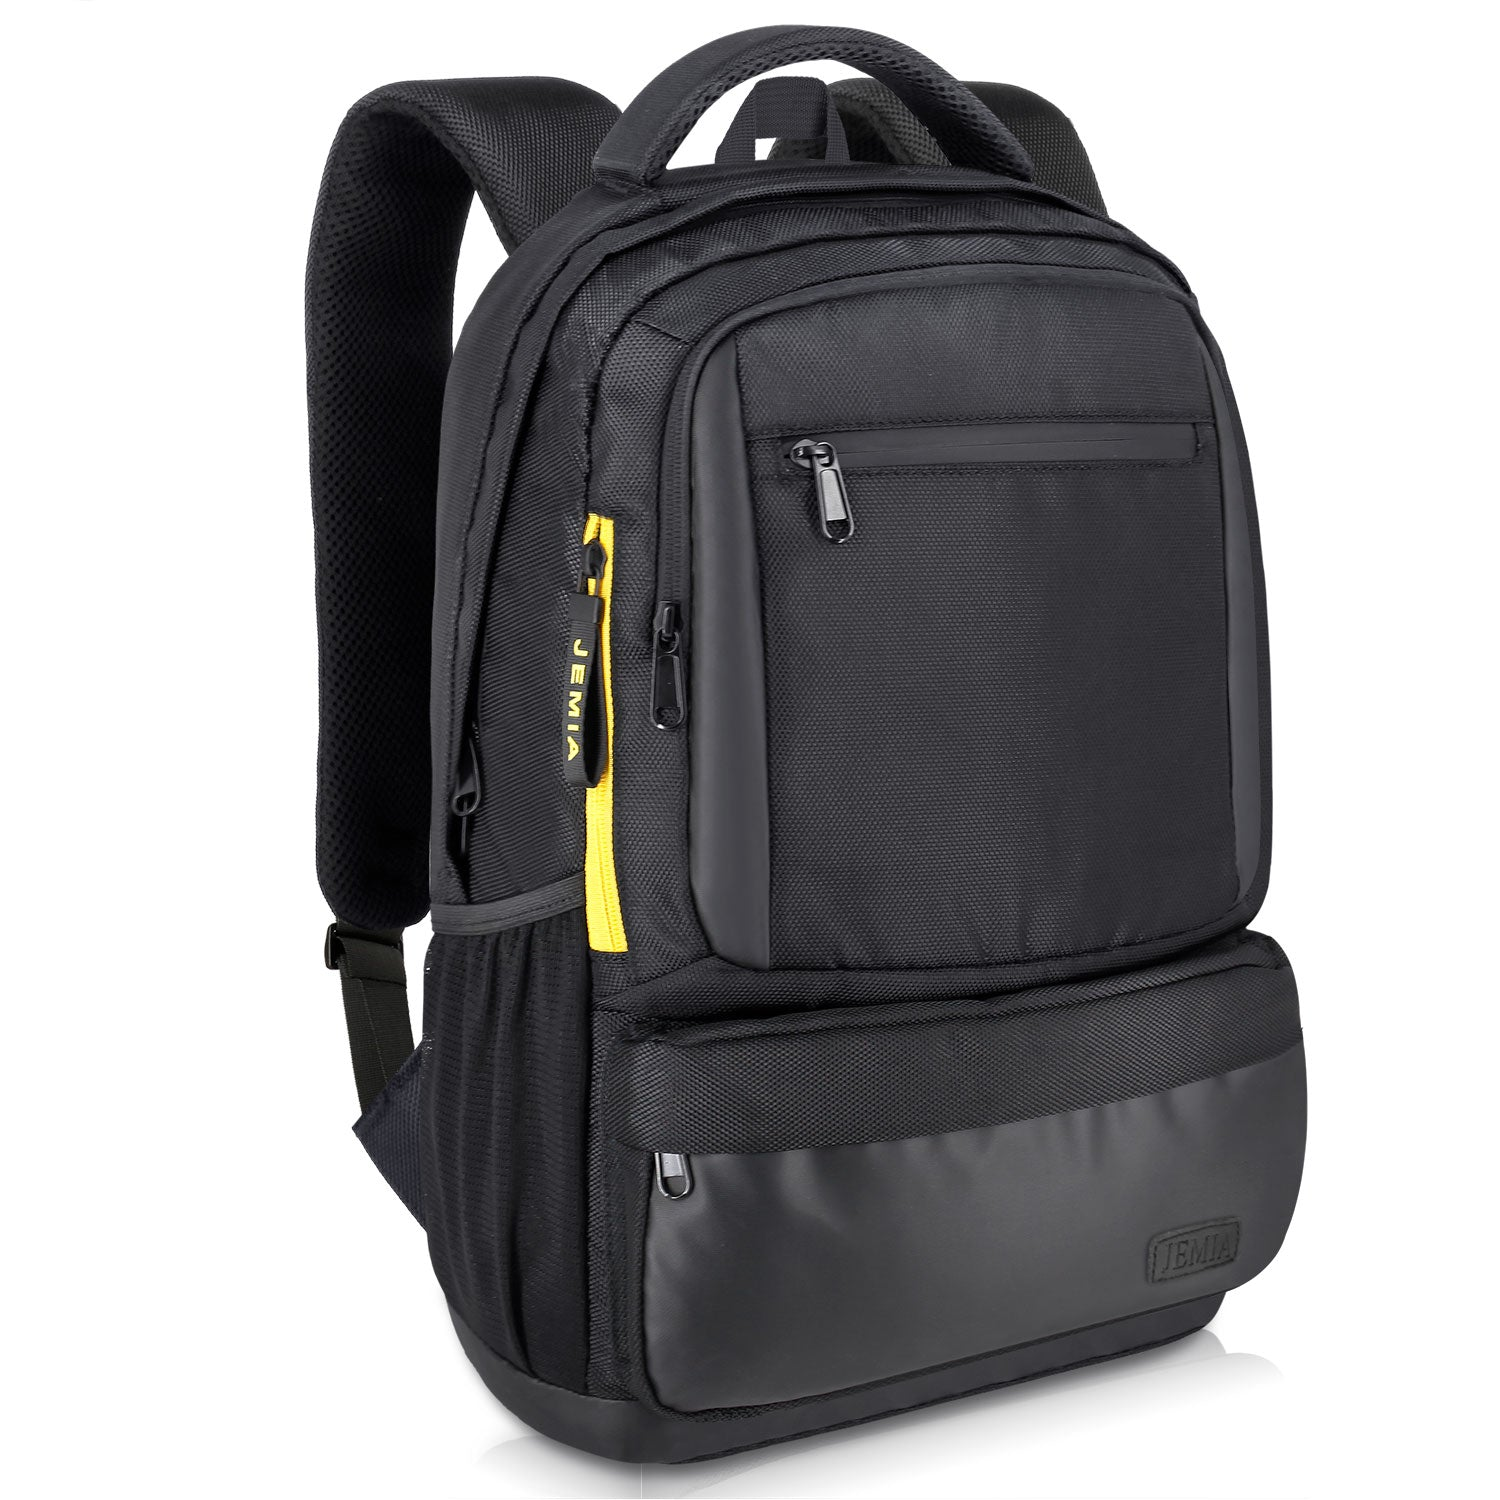 Backpack with 15.6 Inch Laptop and Small Tablet Compartments, Hidden Secret Zipper Pocket